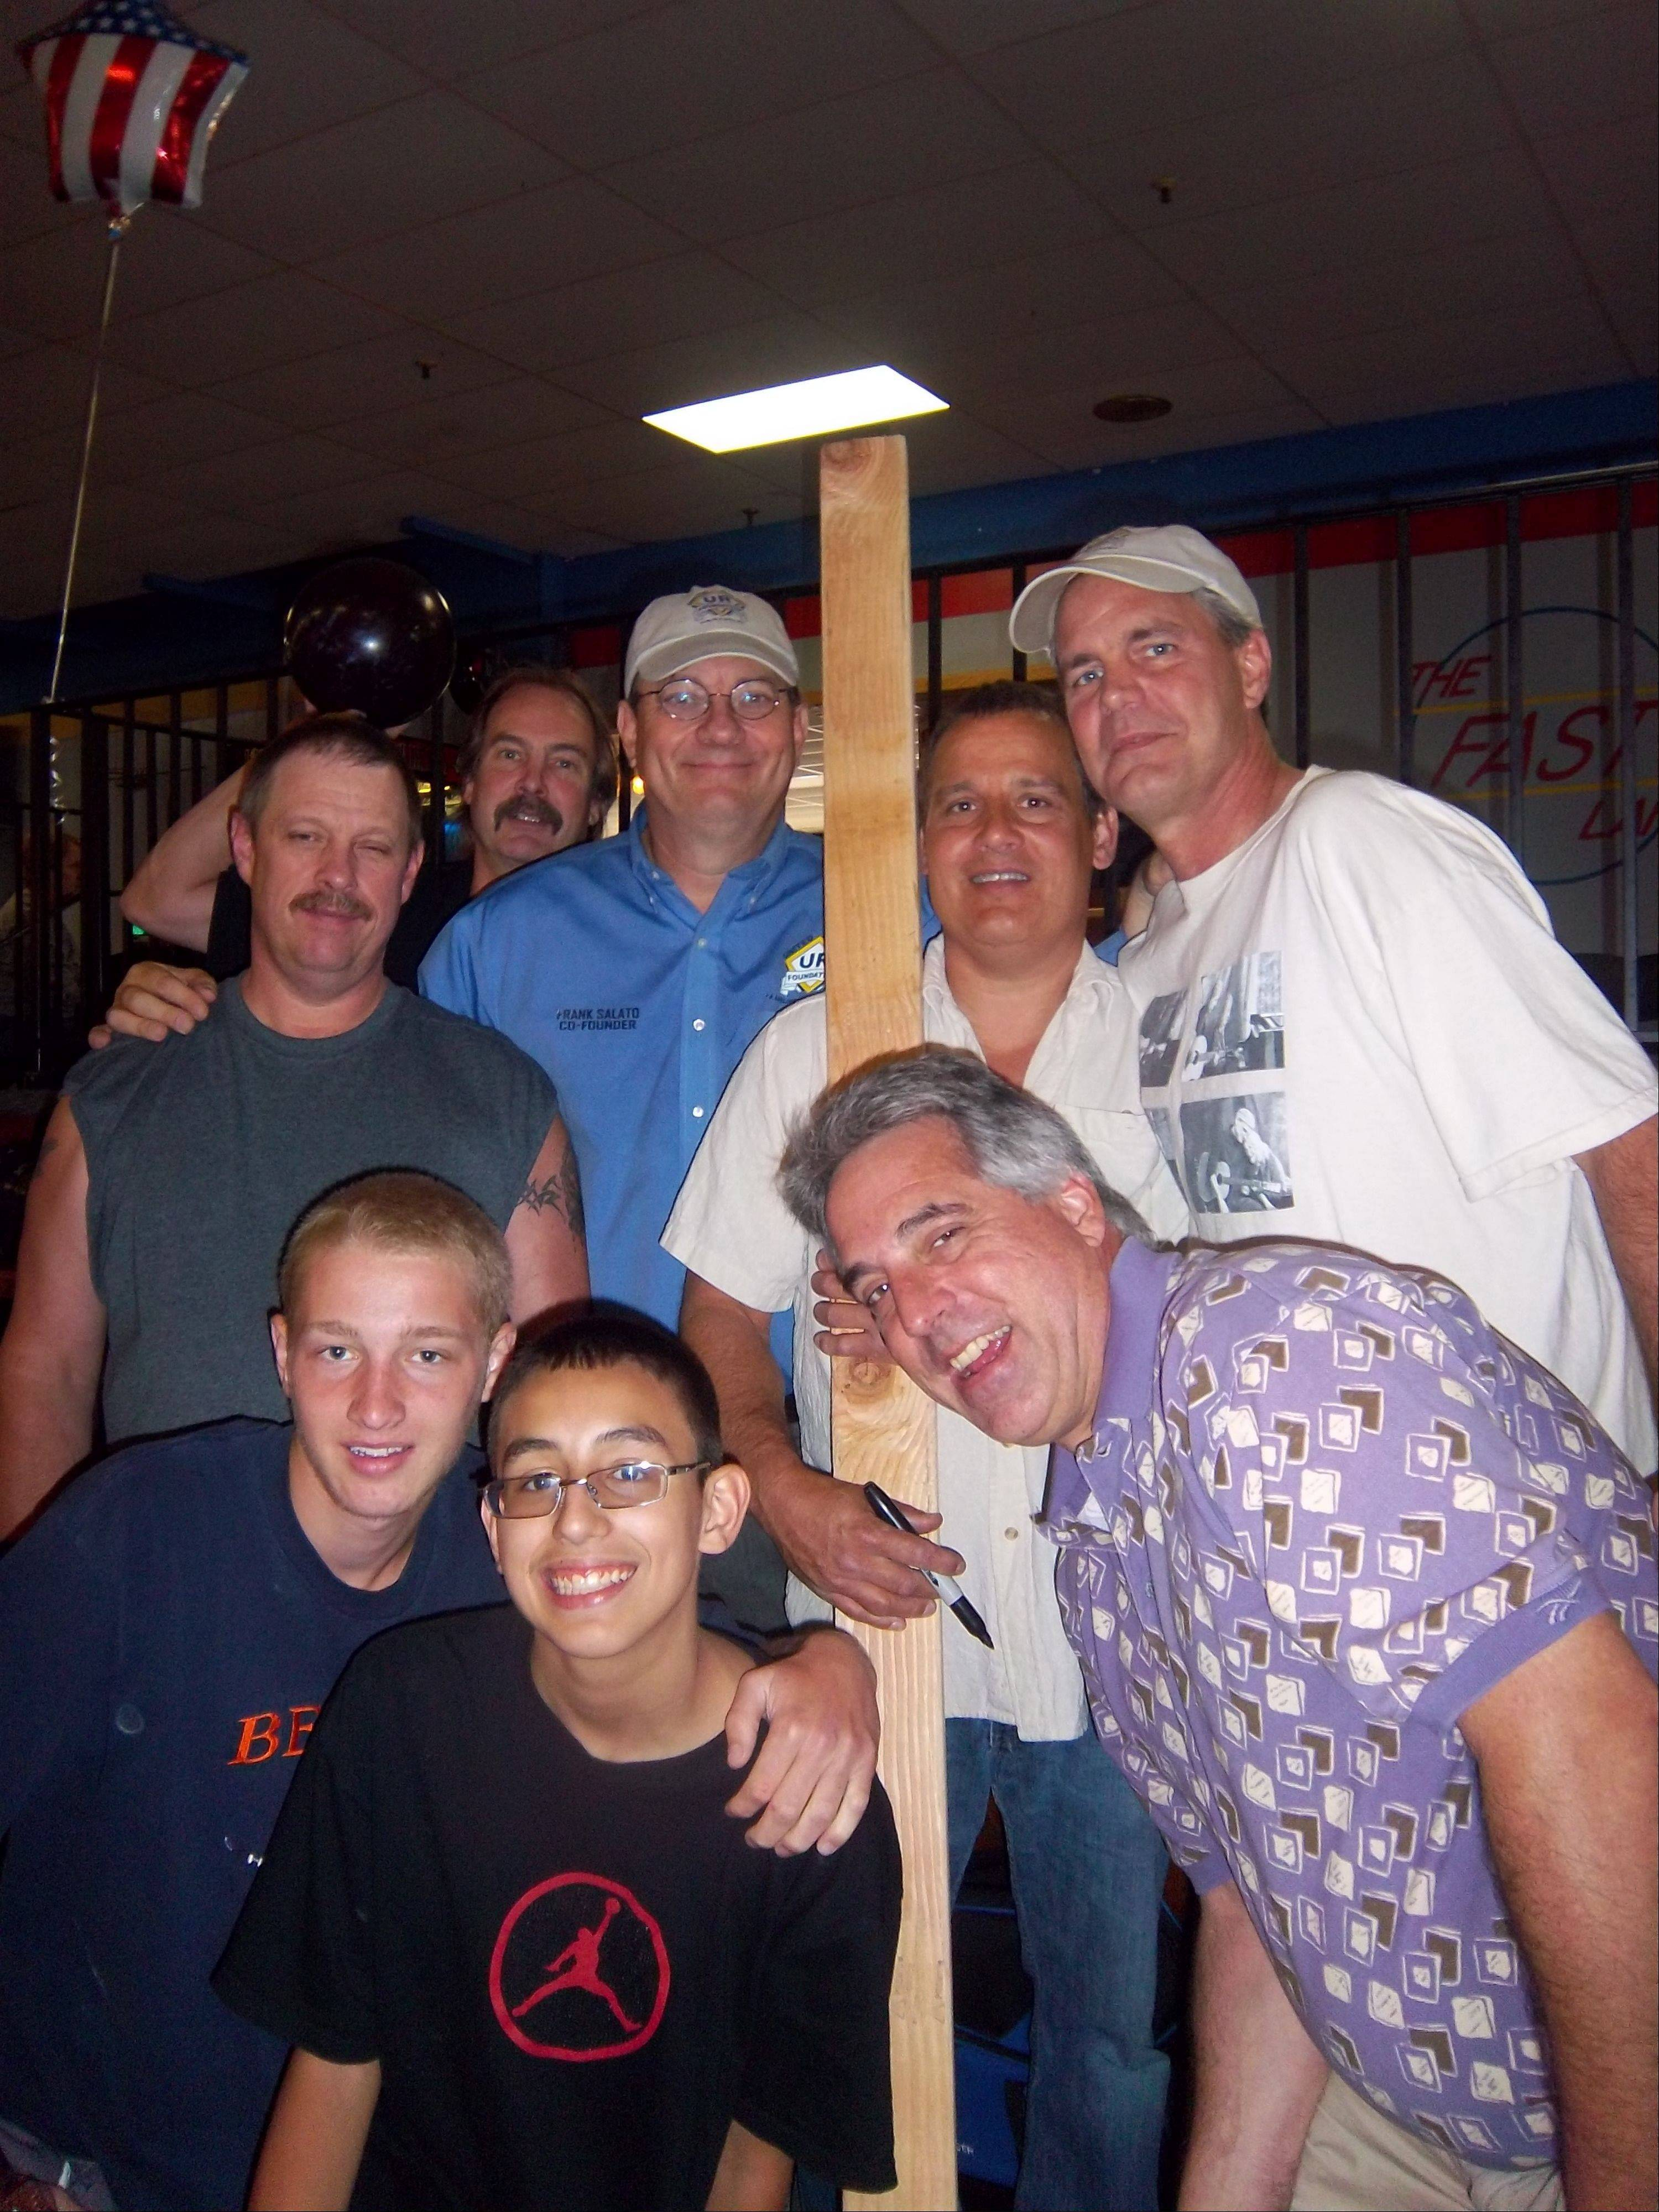 Greg Andejeski, (back left), and his brother Gerry Andejeski, (holding board), take a moment for a snapshot with some of their family and friends. United Relief Foundation co-founder/president Frank Salato is left of Gerry and United Relief Foundation Director Steve Alma is on right.